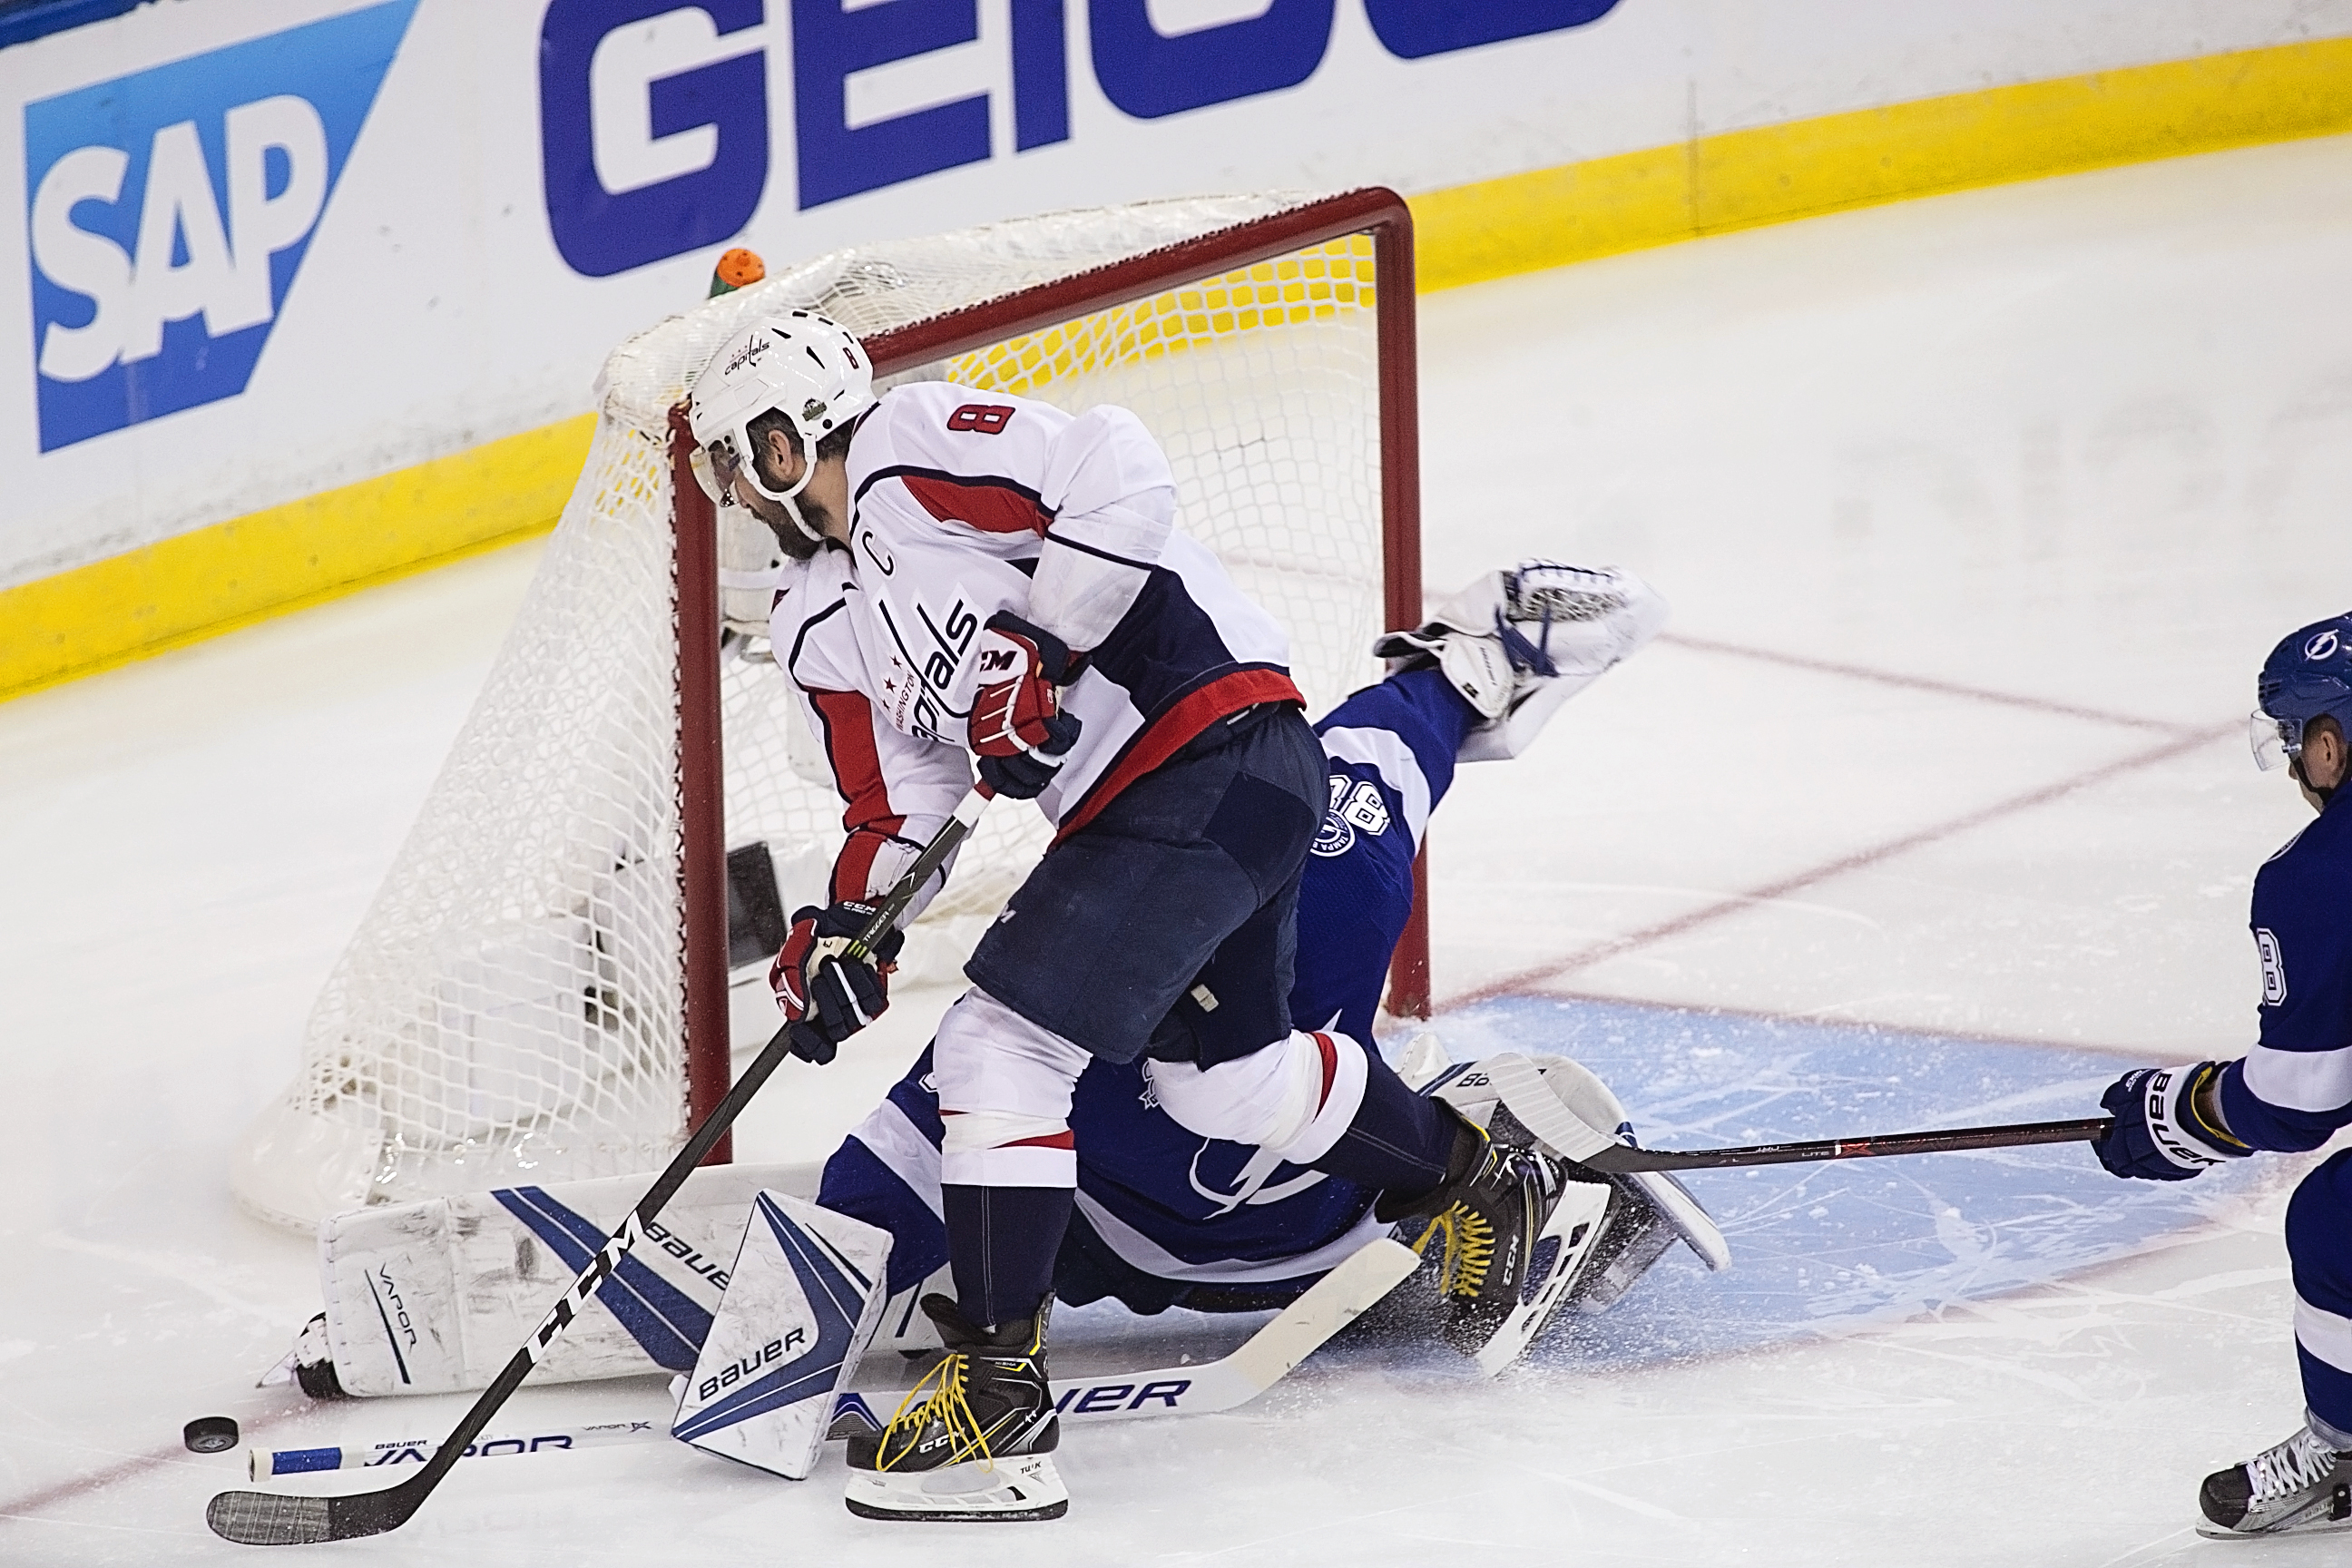 The Bolts shut out Ovechkin./CARMEN MANDATO